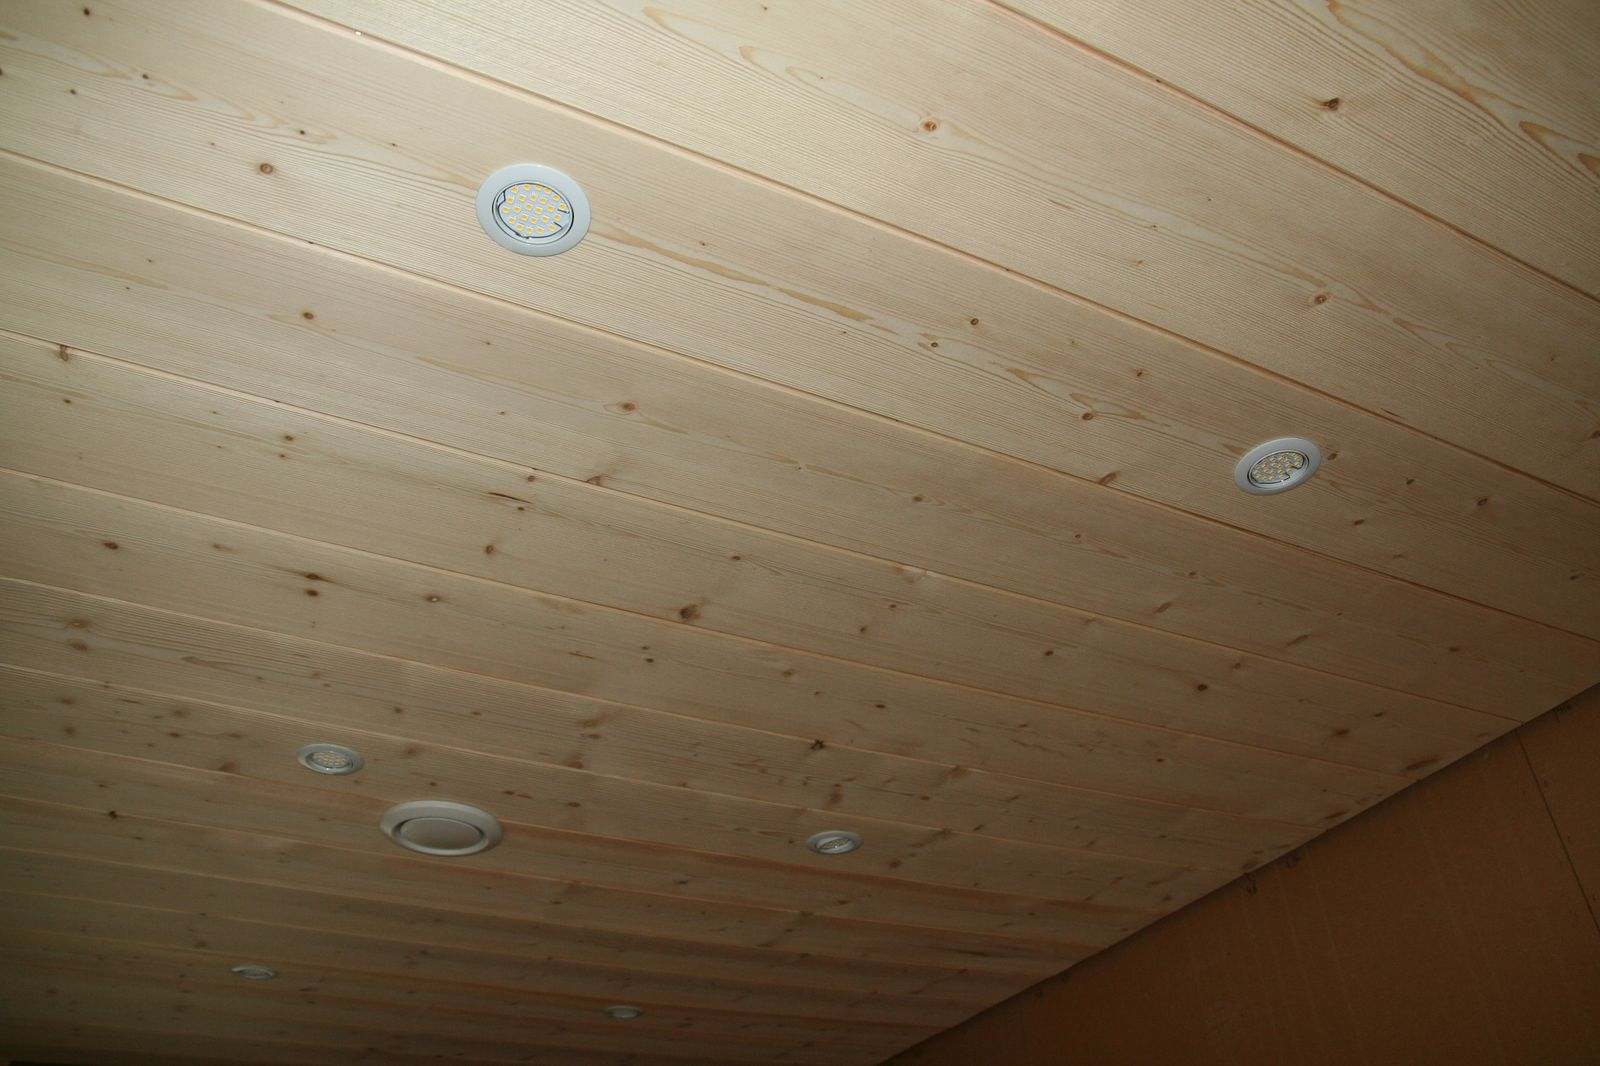 Pose d un plafond lambris pvc travaux devis en ligne for Pose d un plafond en lambris pvc